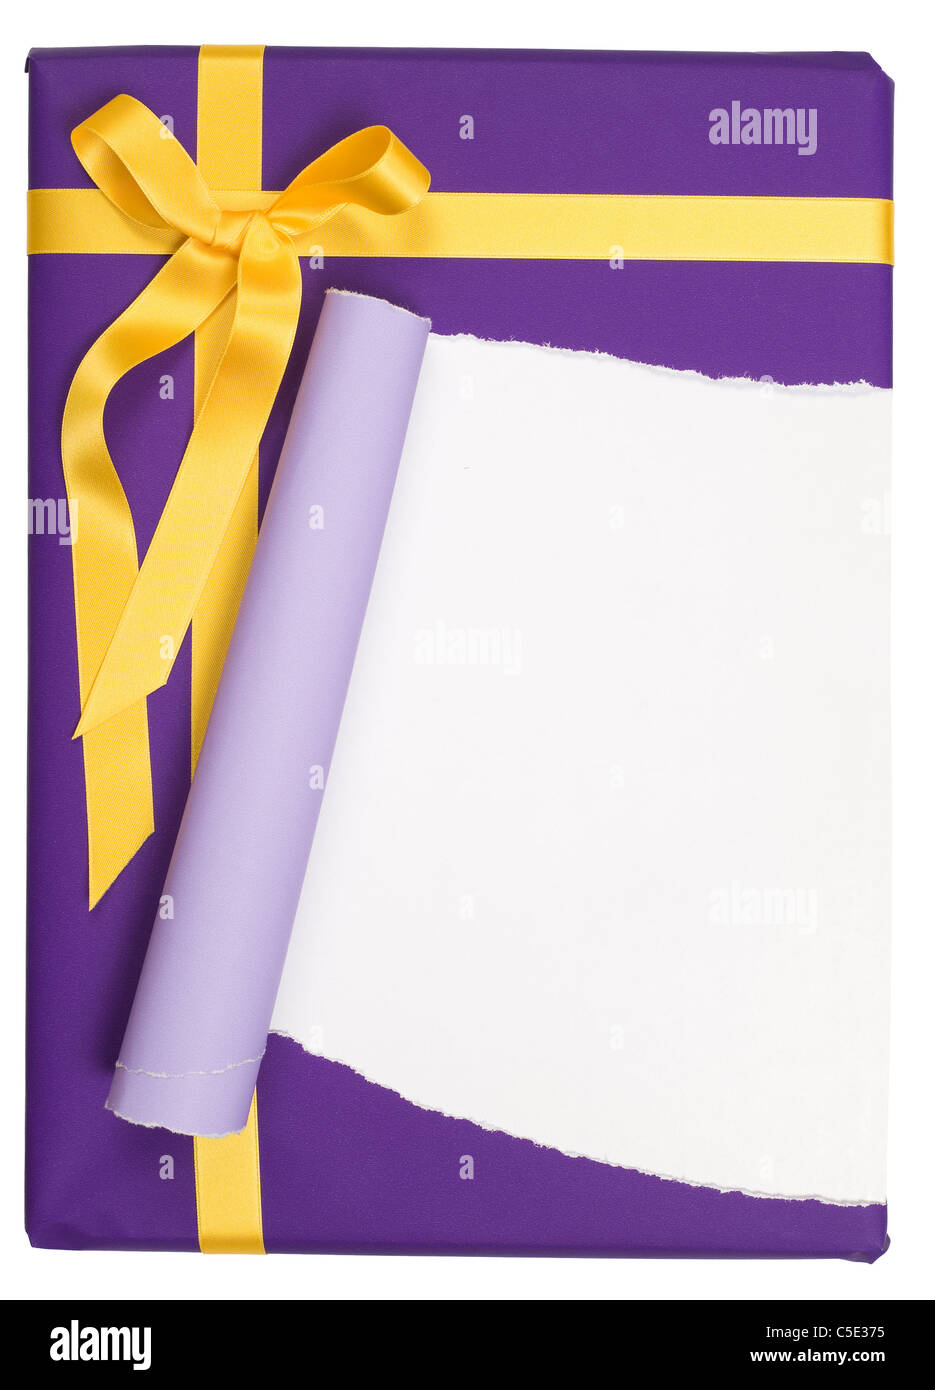 Close-up de un regalo envuelto con papel de regalo púrpura rasgada contra el fondo blanco. Imagen De Stock